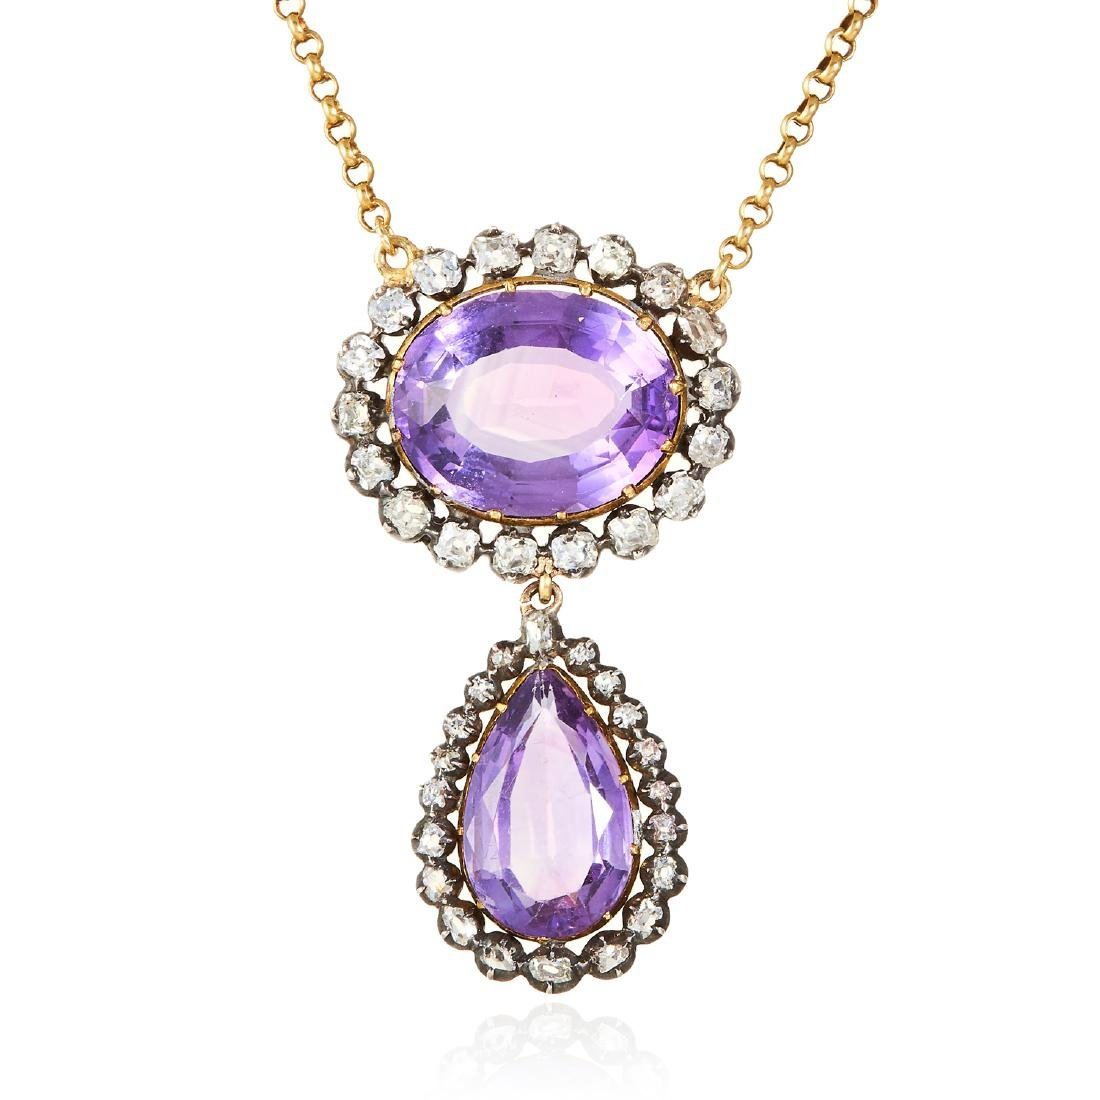 AN ANTIQUE AMETHYST AND DIAMOND PENDANT, CIRCA 1850 in